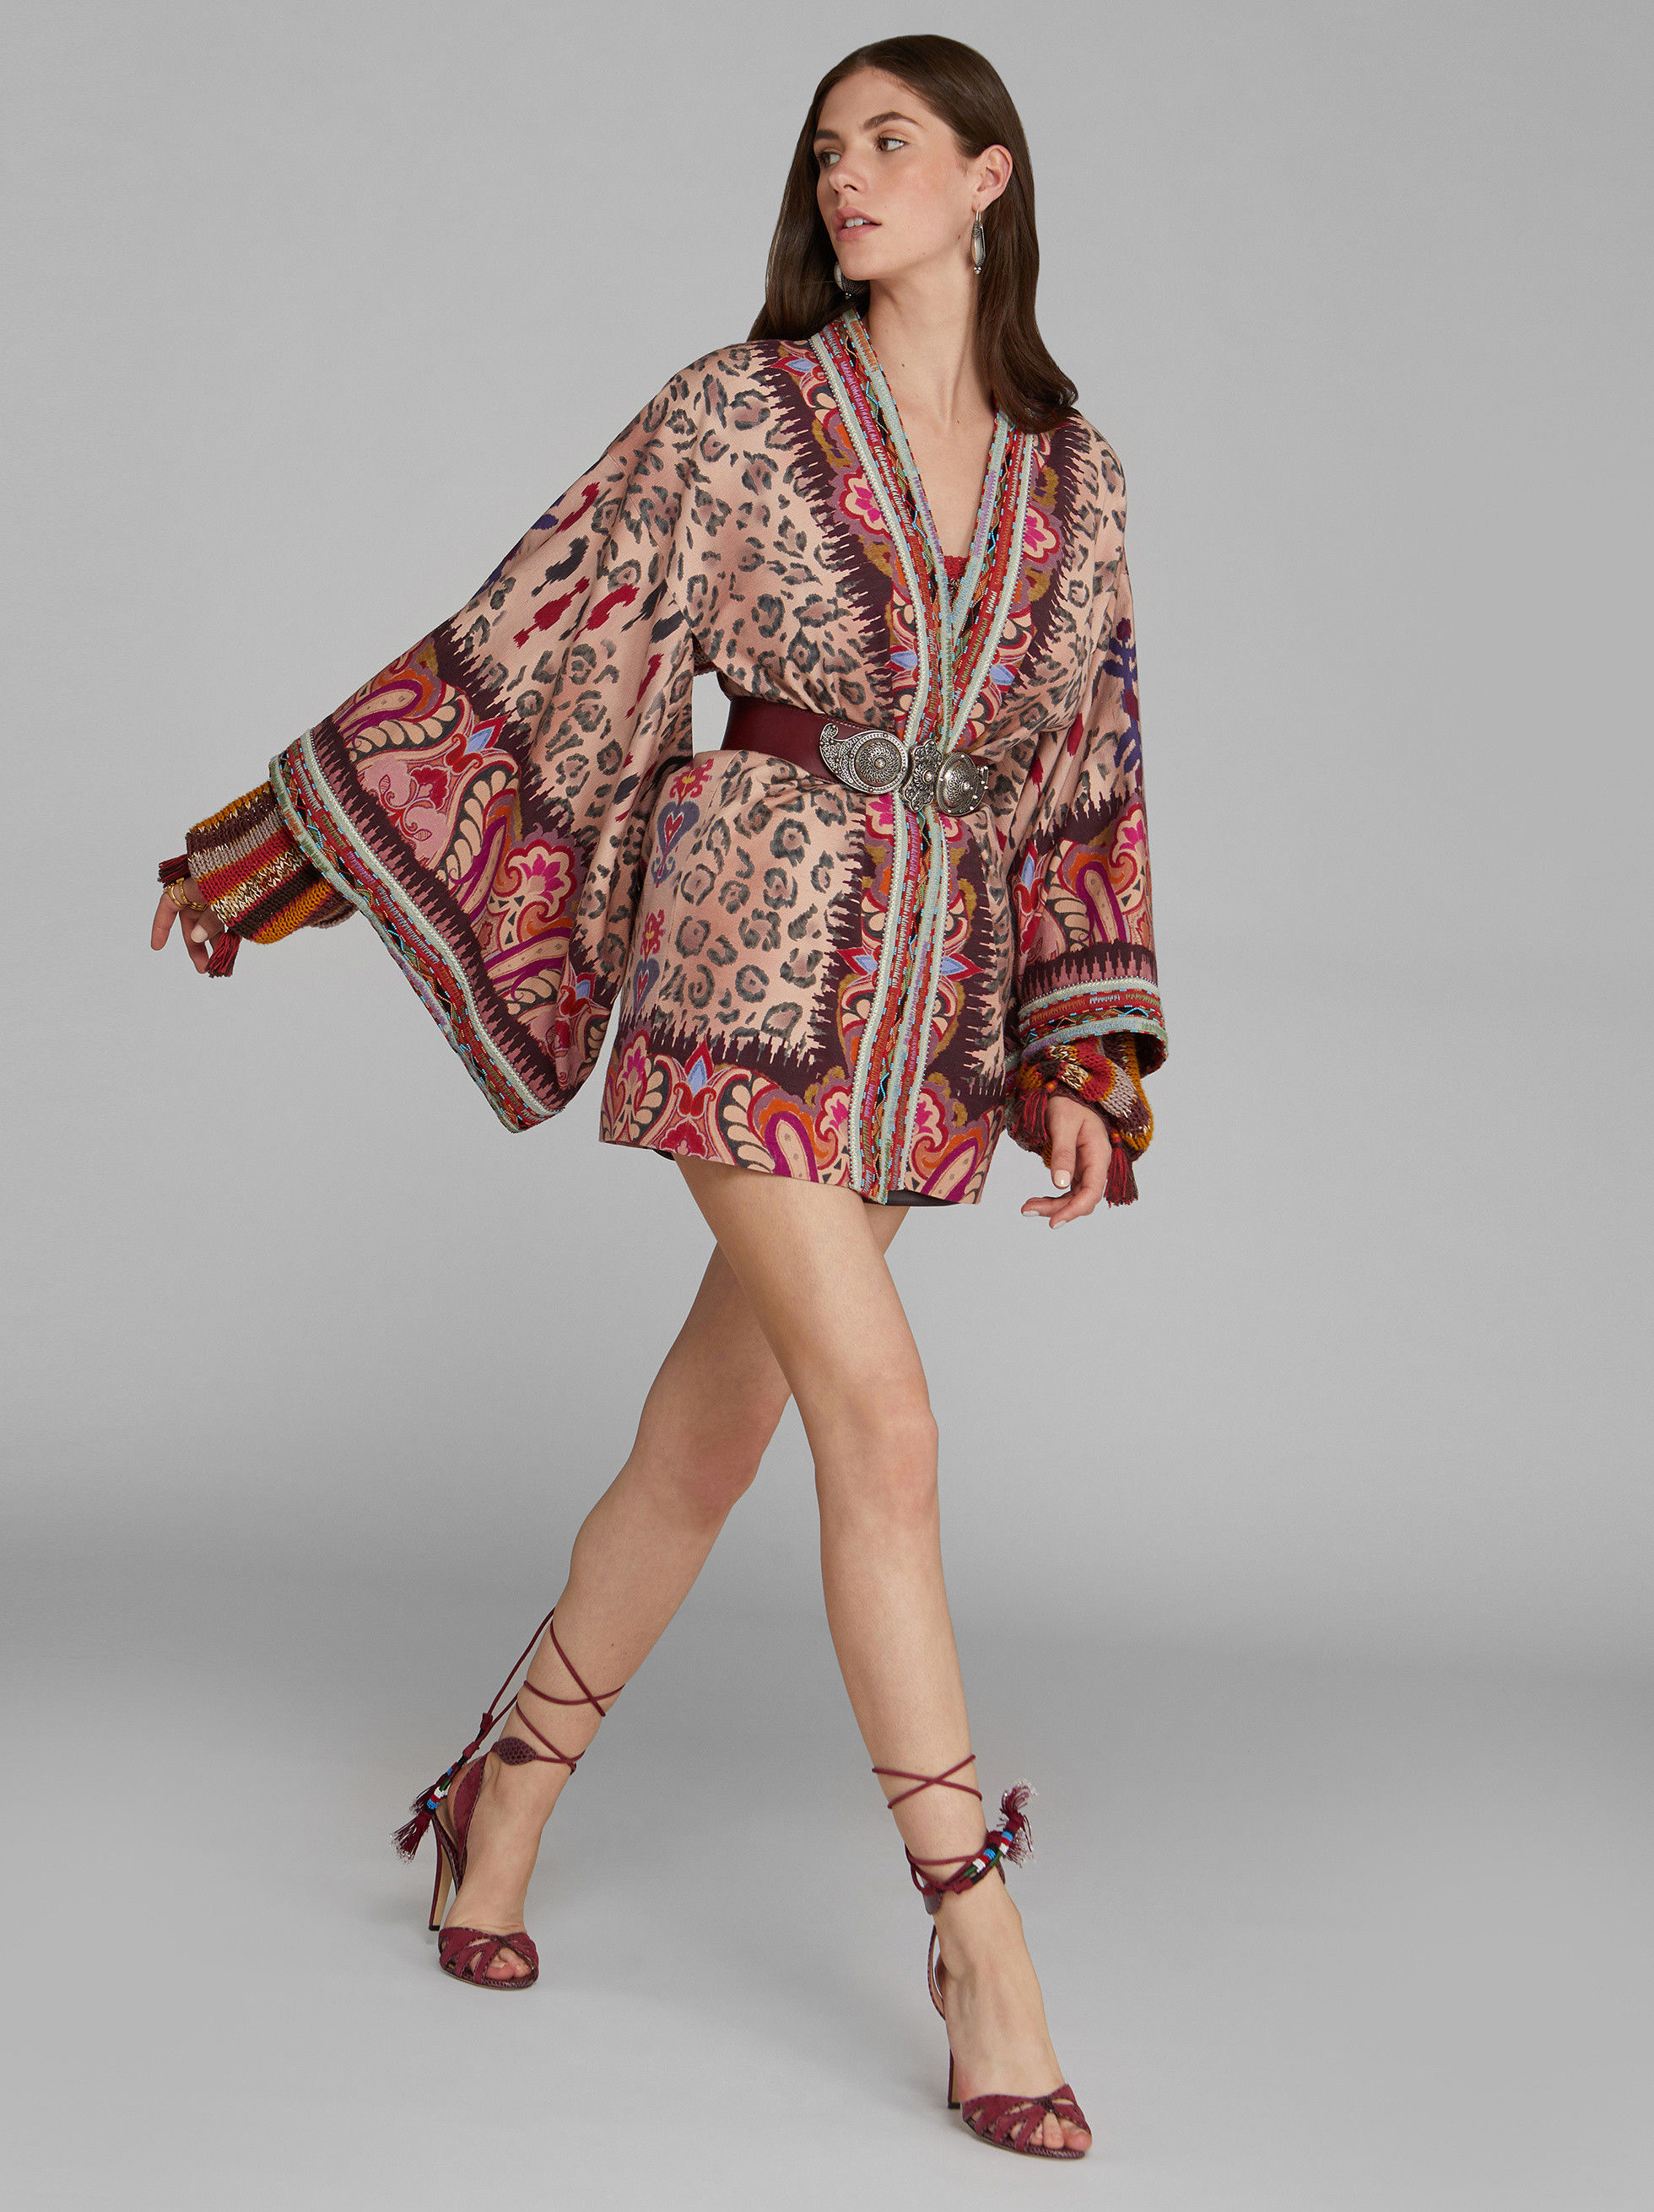 KIMONO JACKET WITH PAISLEY PRINT WITH ANIMAL DESIGN